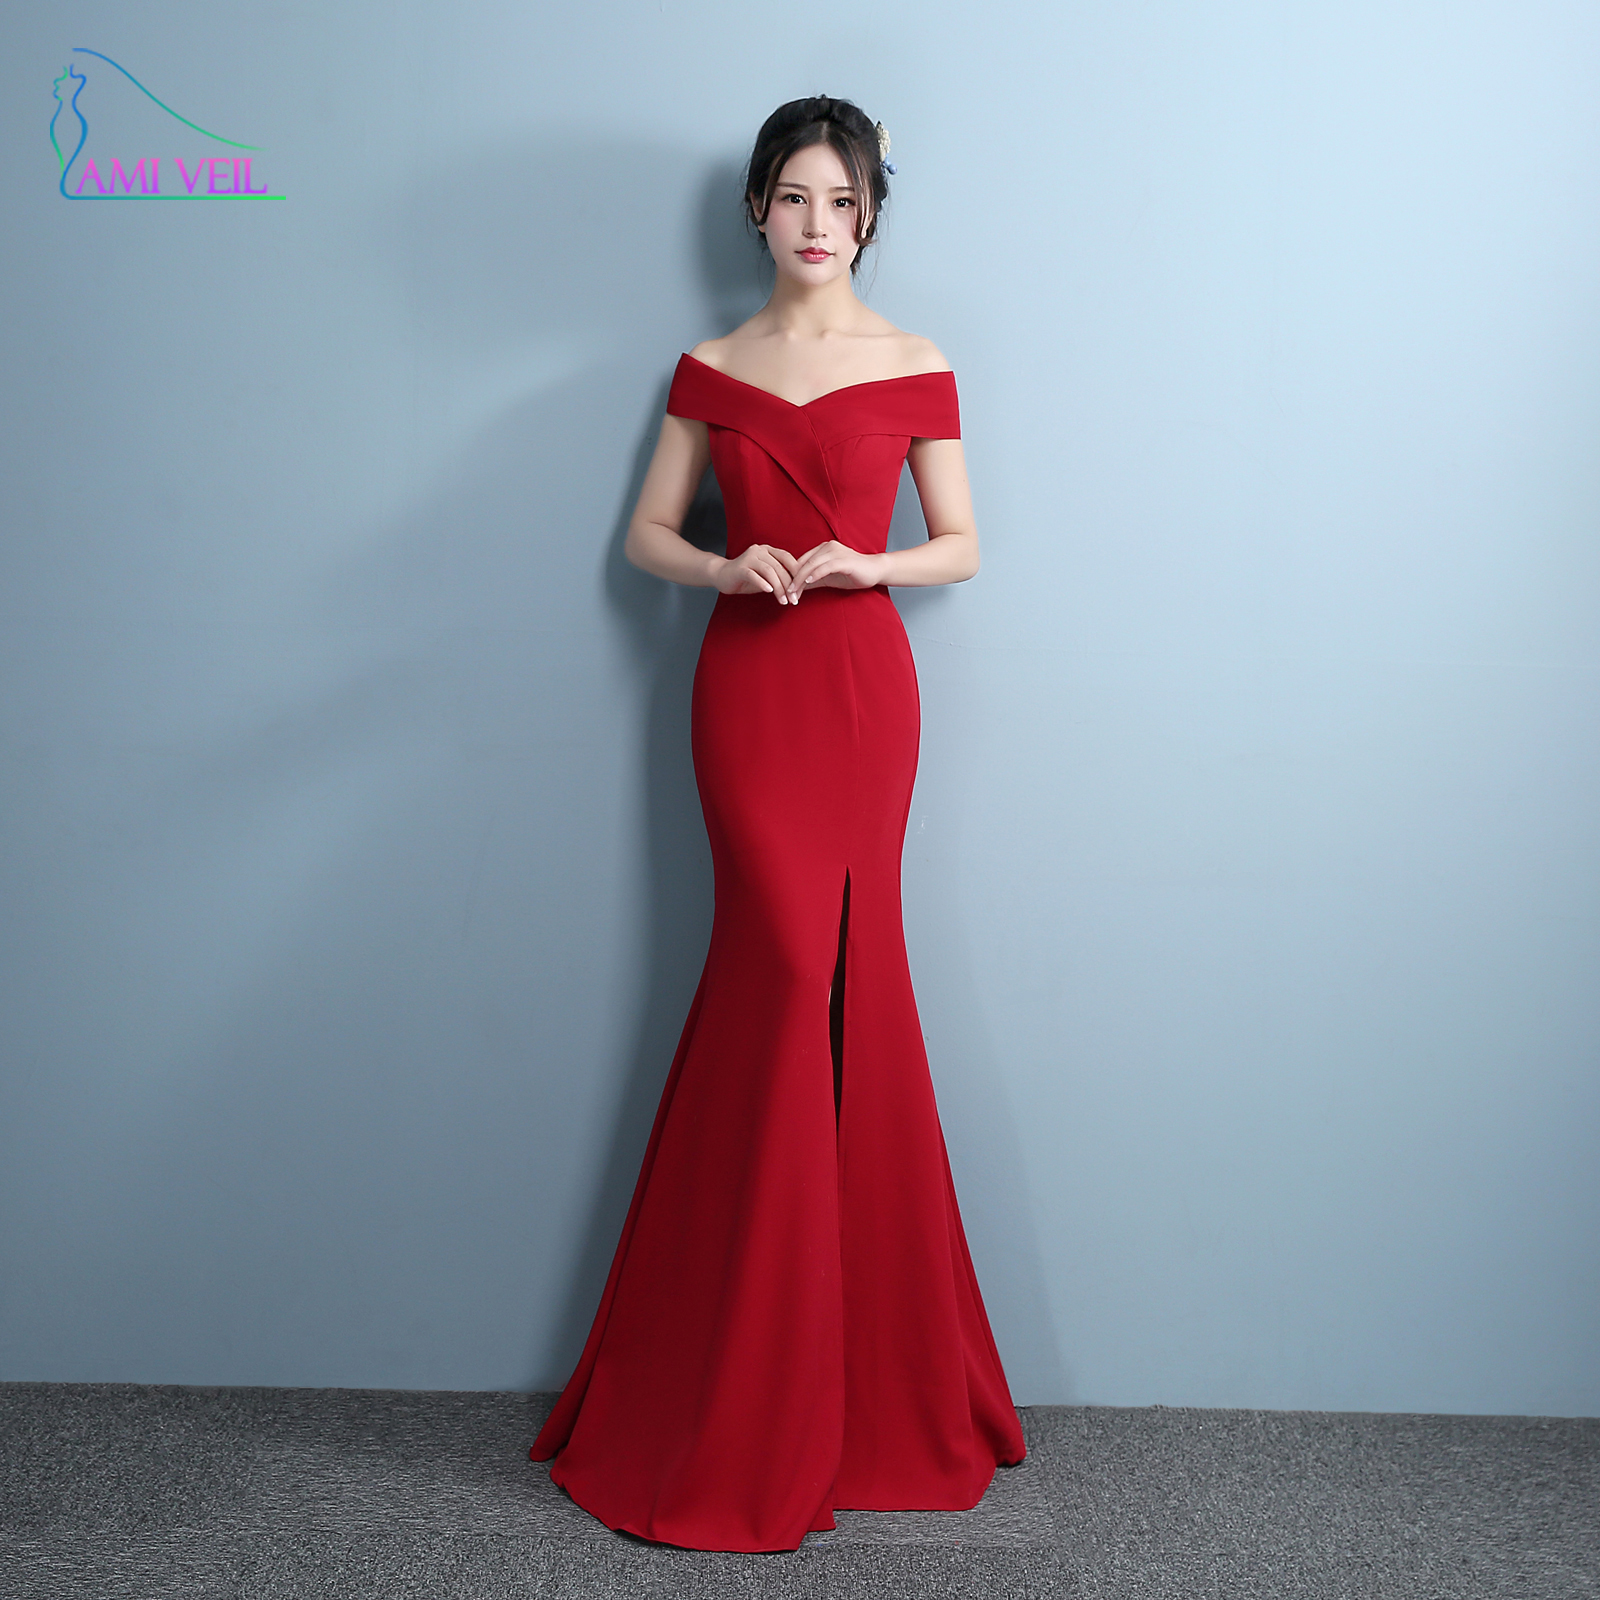 Grown Woman Dress Red Mermaid Prom Formal